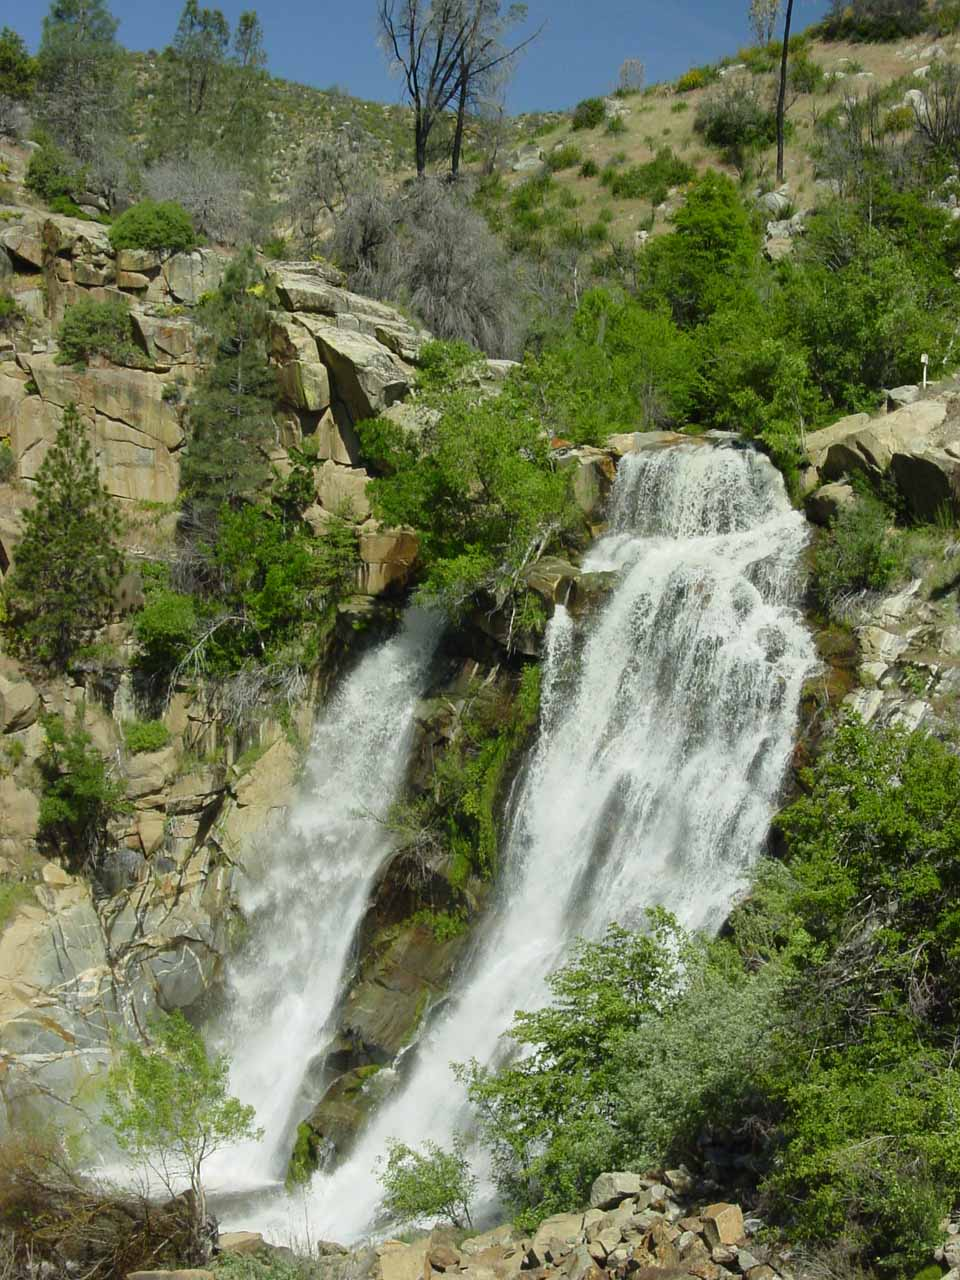 South Creek Falls not too far from Kernville